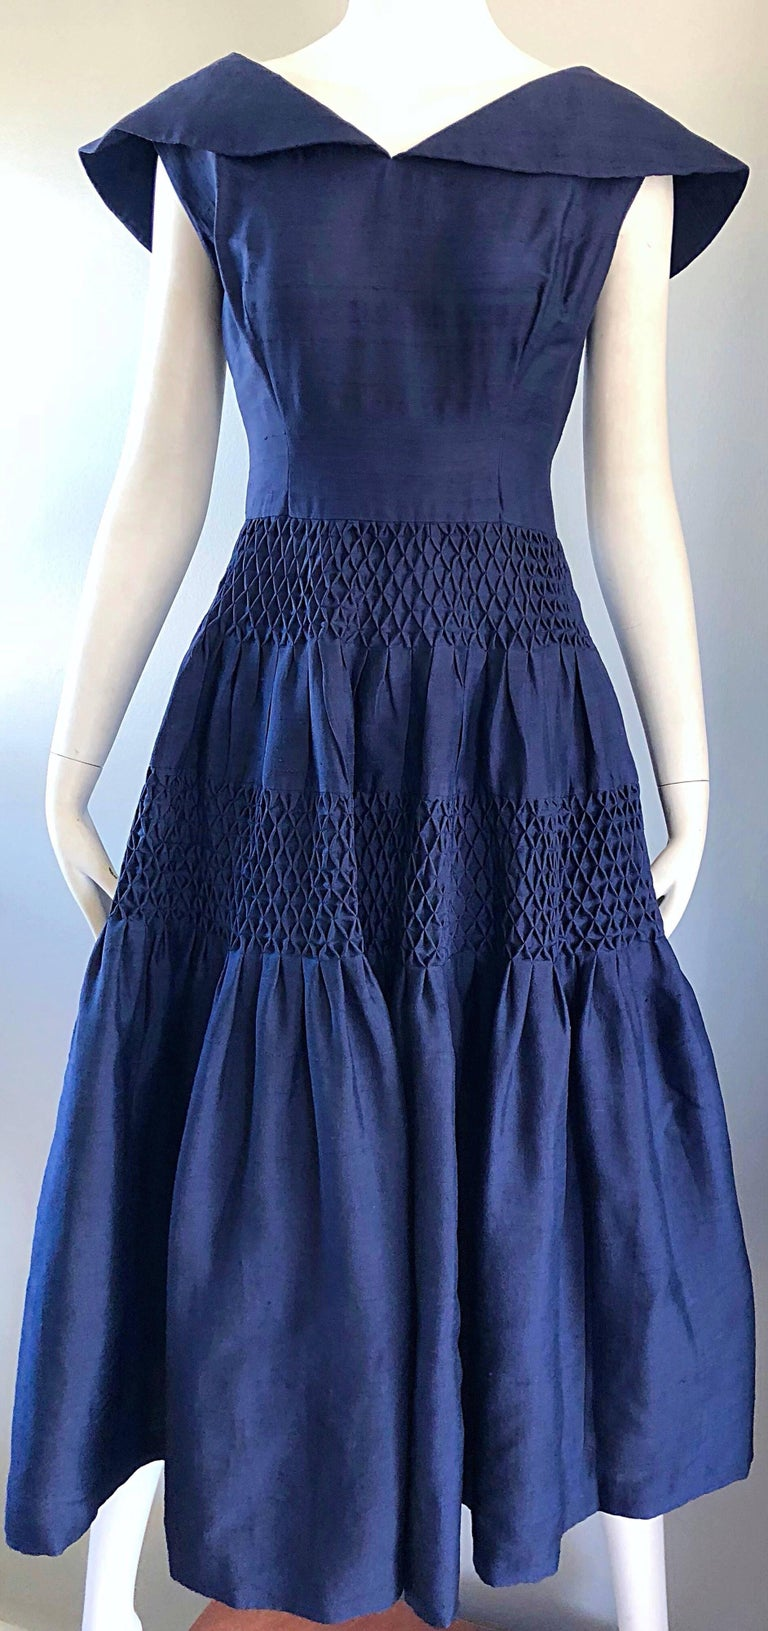 1950s Demi Couture Navy Blue Silk Shantung Vintage 50s Nautical Dress For Sale 4